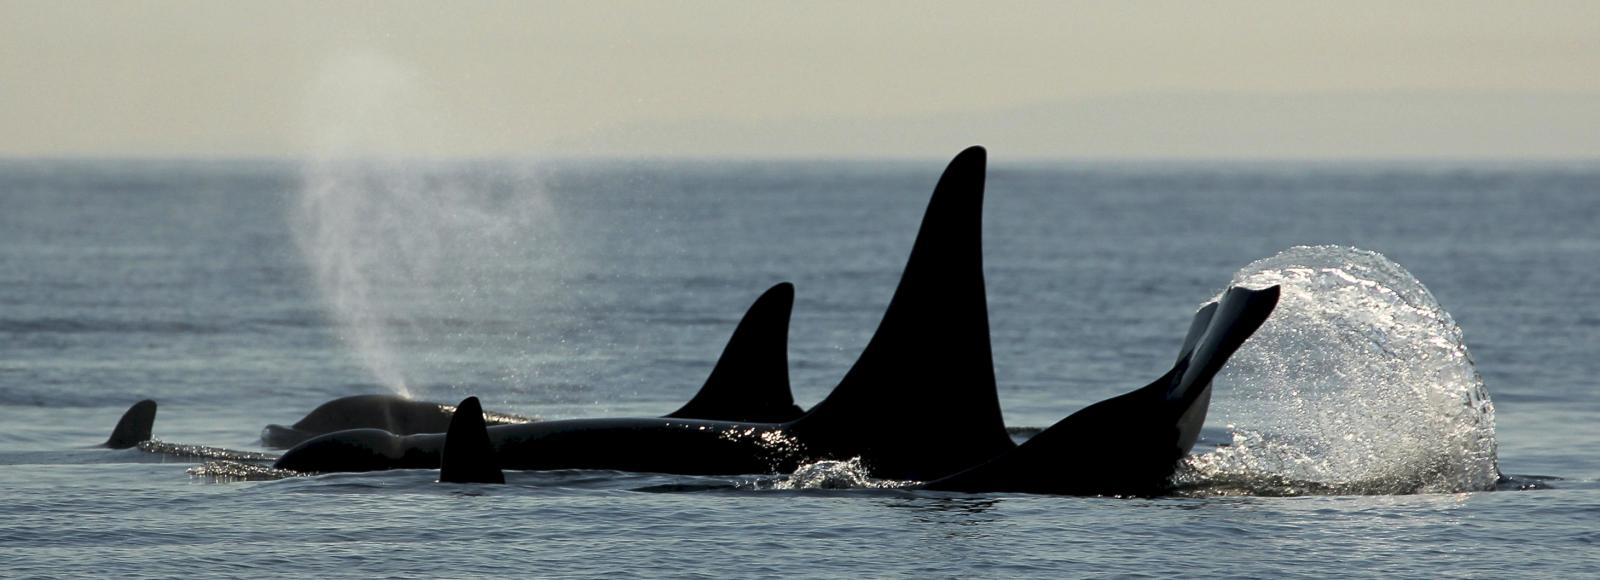 The silhouettes of the backs, fins, and a tale of a few orcas breaking the surface of the water